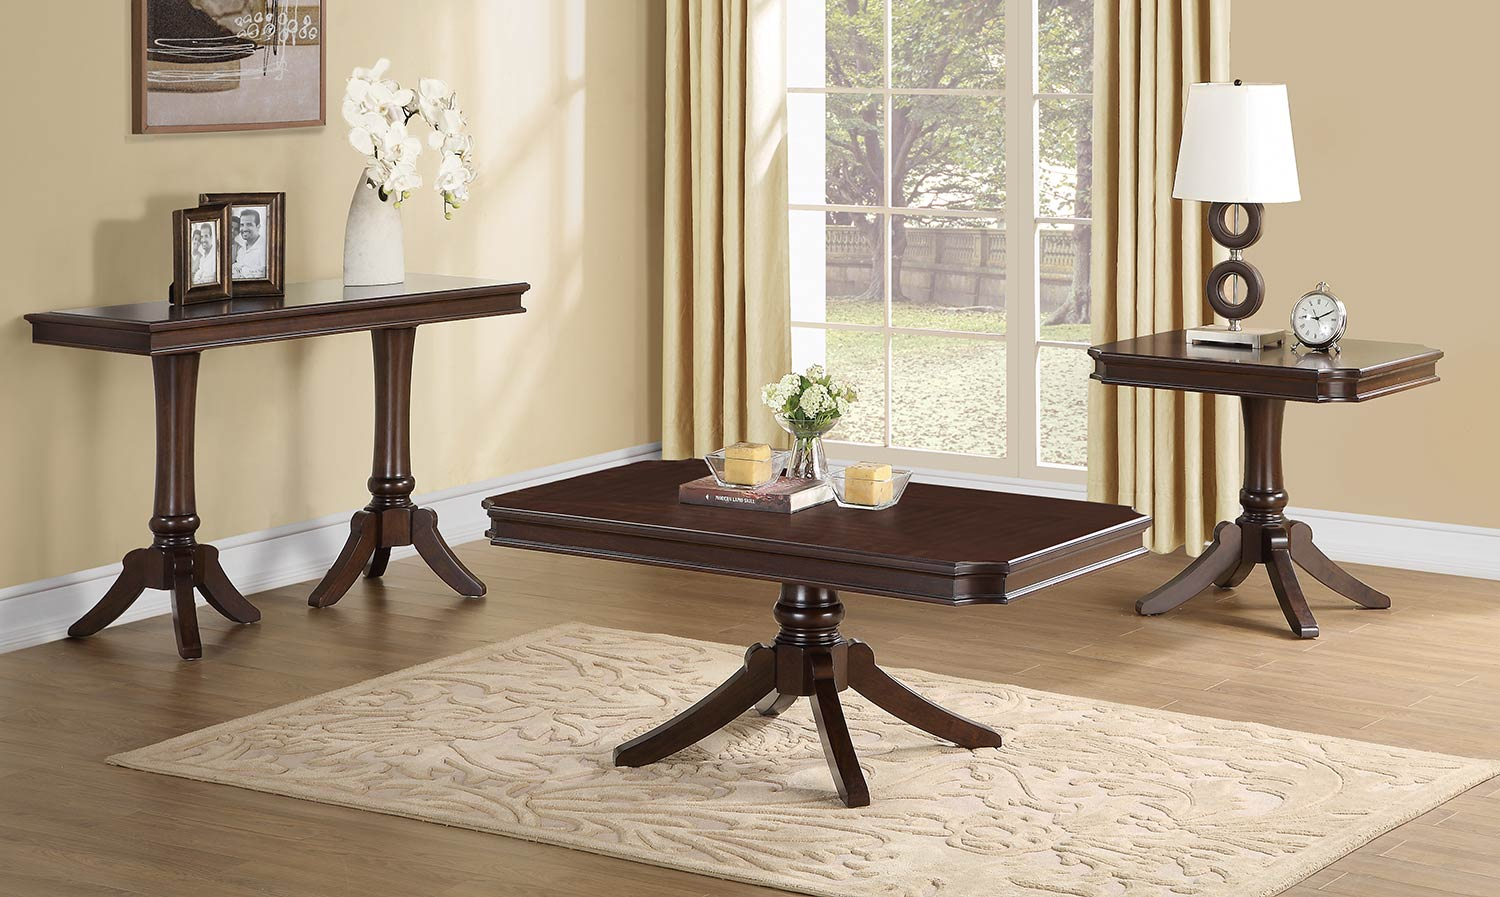 Homelegance Marston Rectangular Coffee Table Set   Dark Cherry